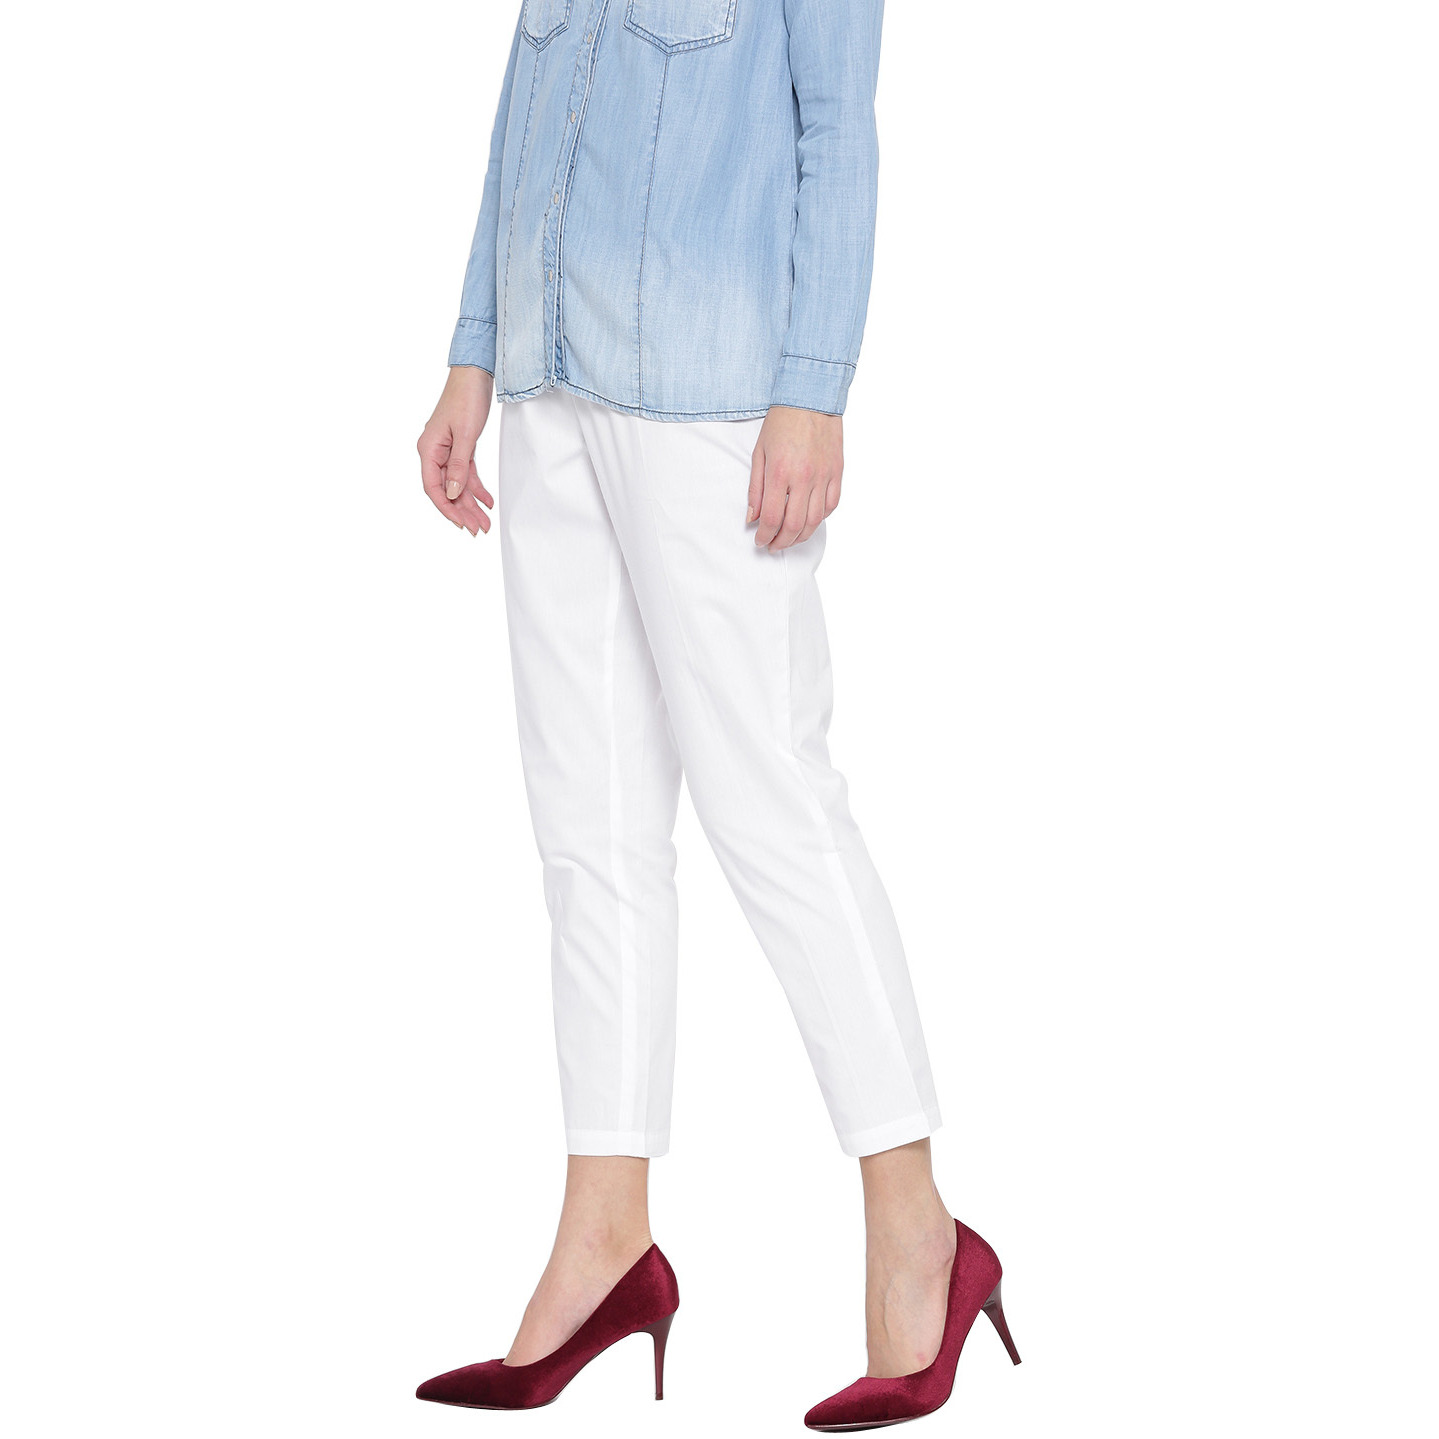 White Cotton Solid Pant For Womens